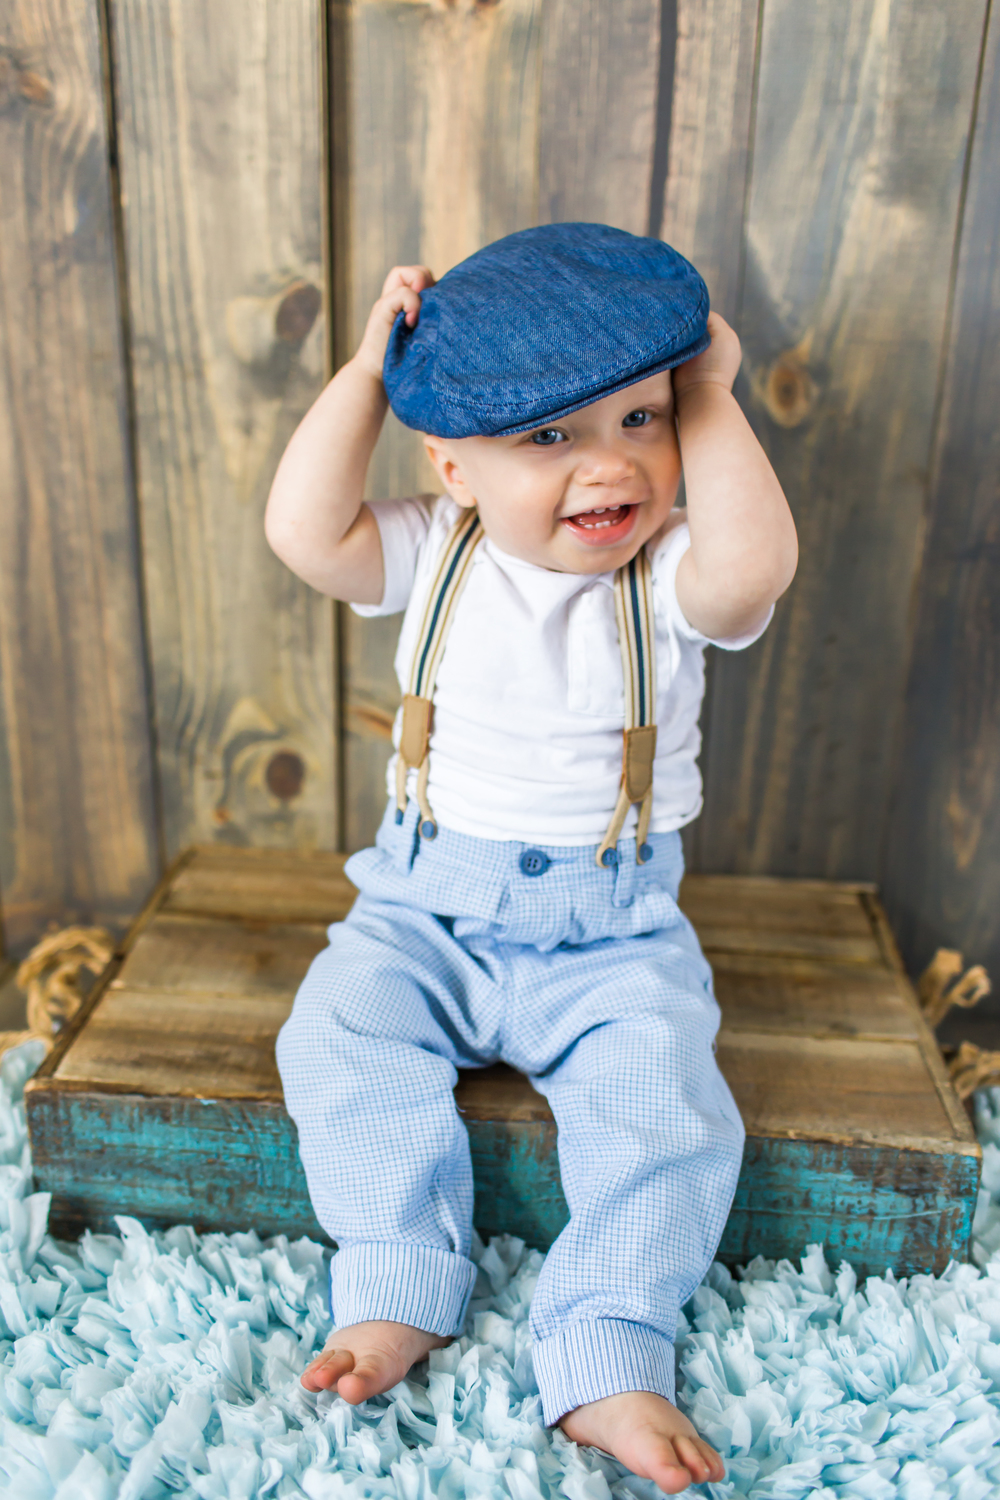 He Giggles As Waves The Hat Around His Vintage Suspenders Threatening To Slide Down 1 Year Old Arms Still A Little Pudgy With Baby Fat But Growing